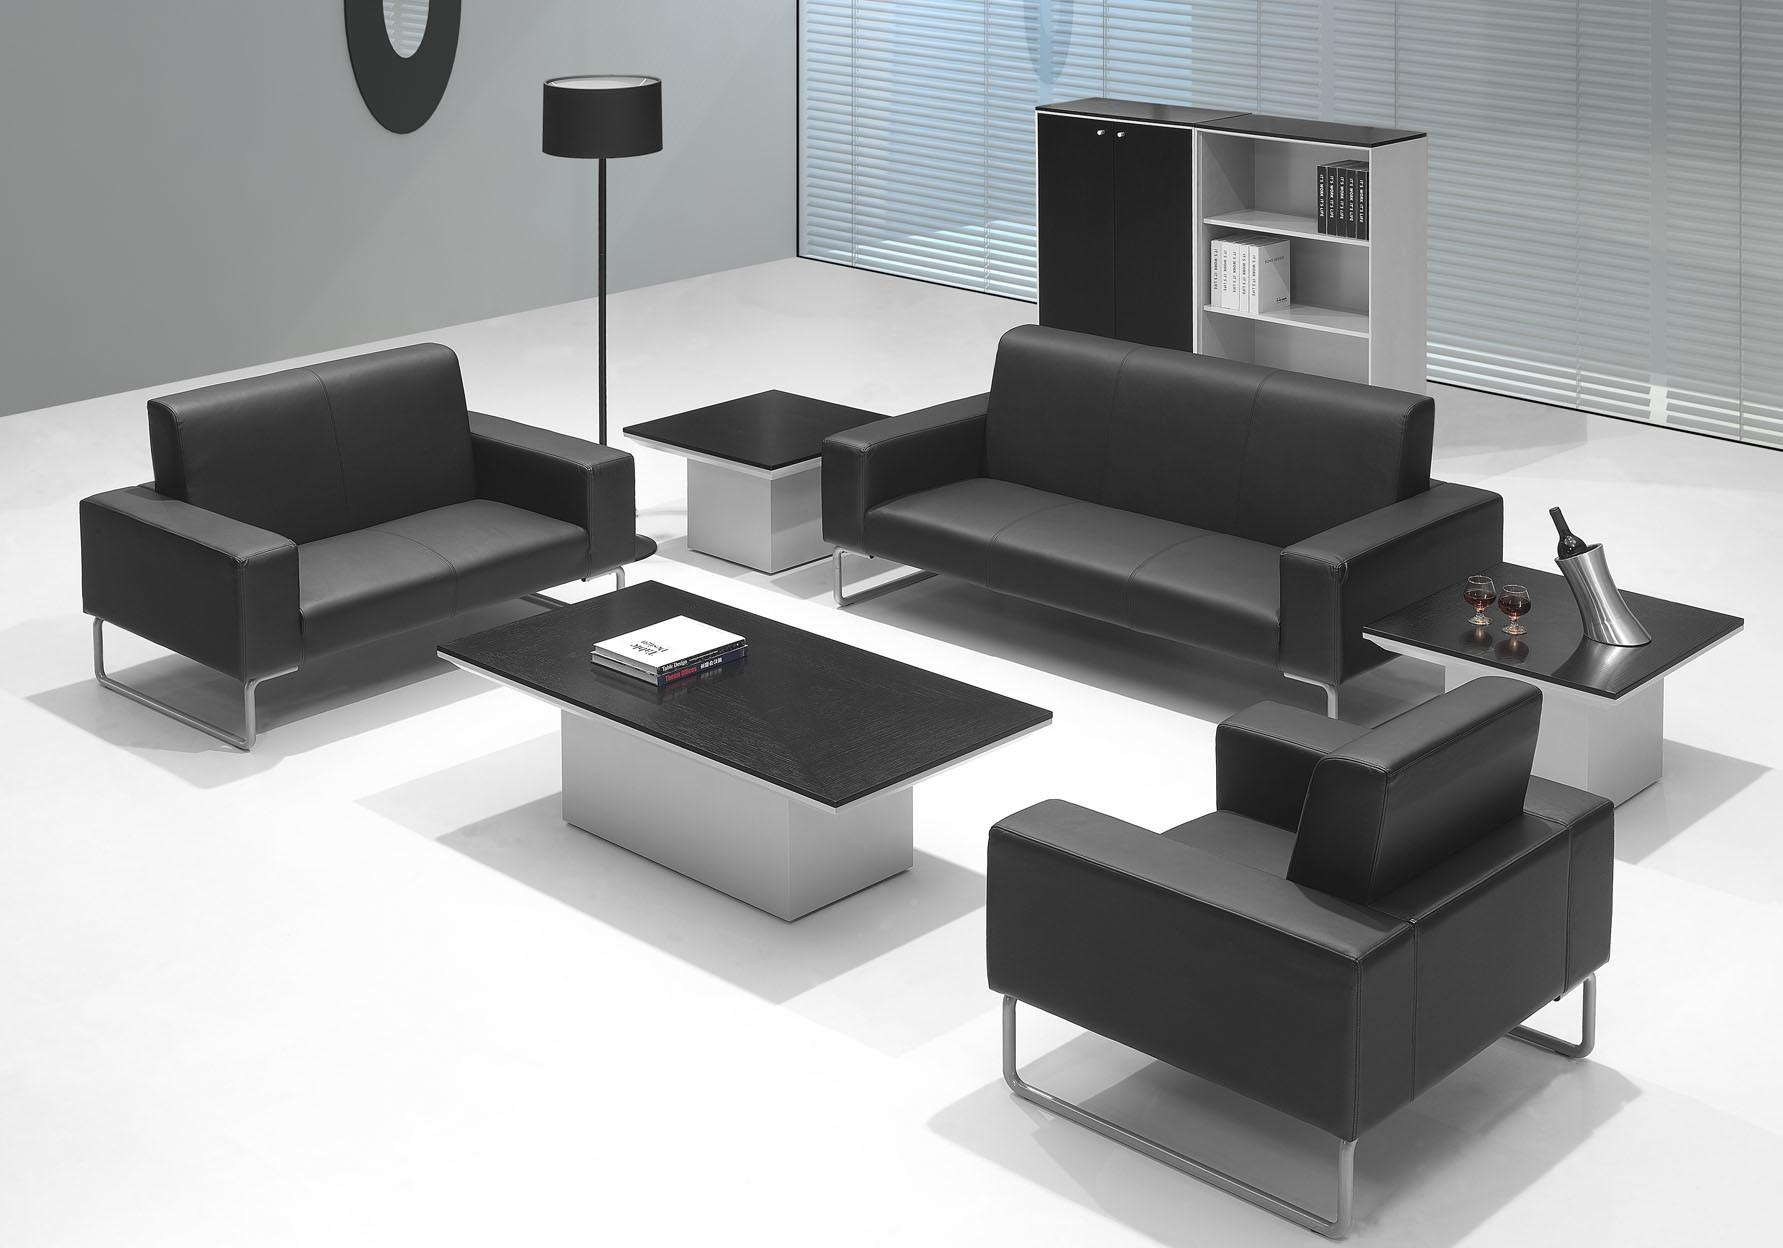 Office Sofa Furniture | Sofa Malaysia Intended For Office Sofa Chairs (View 15 of 20)